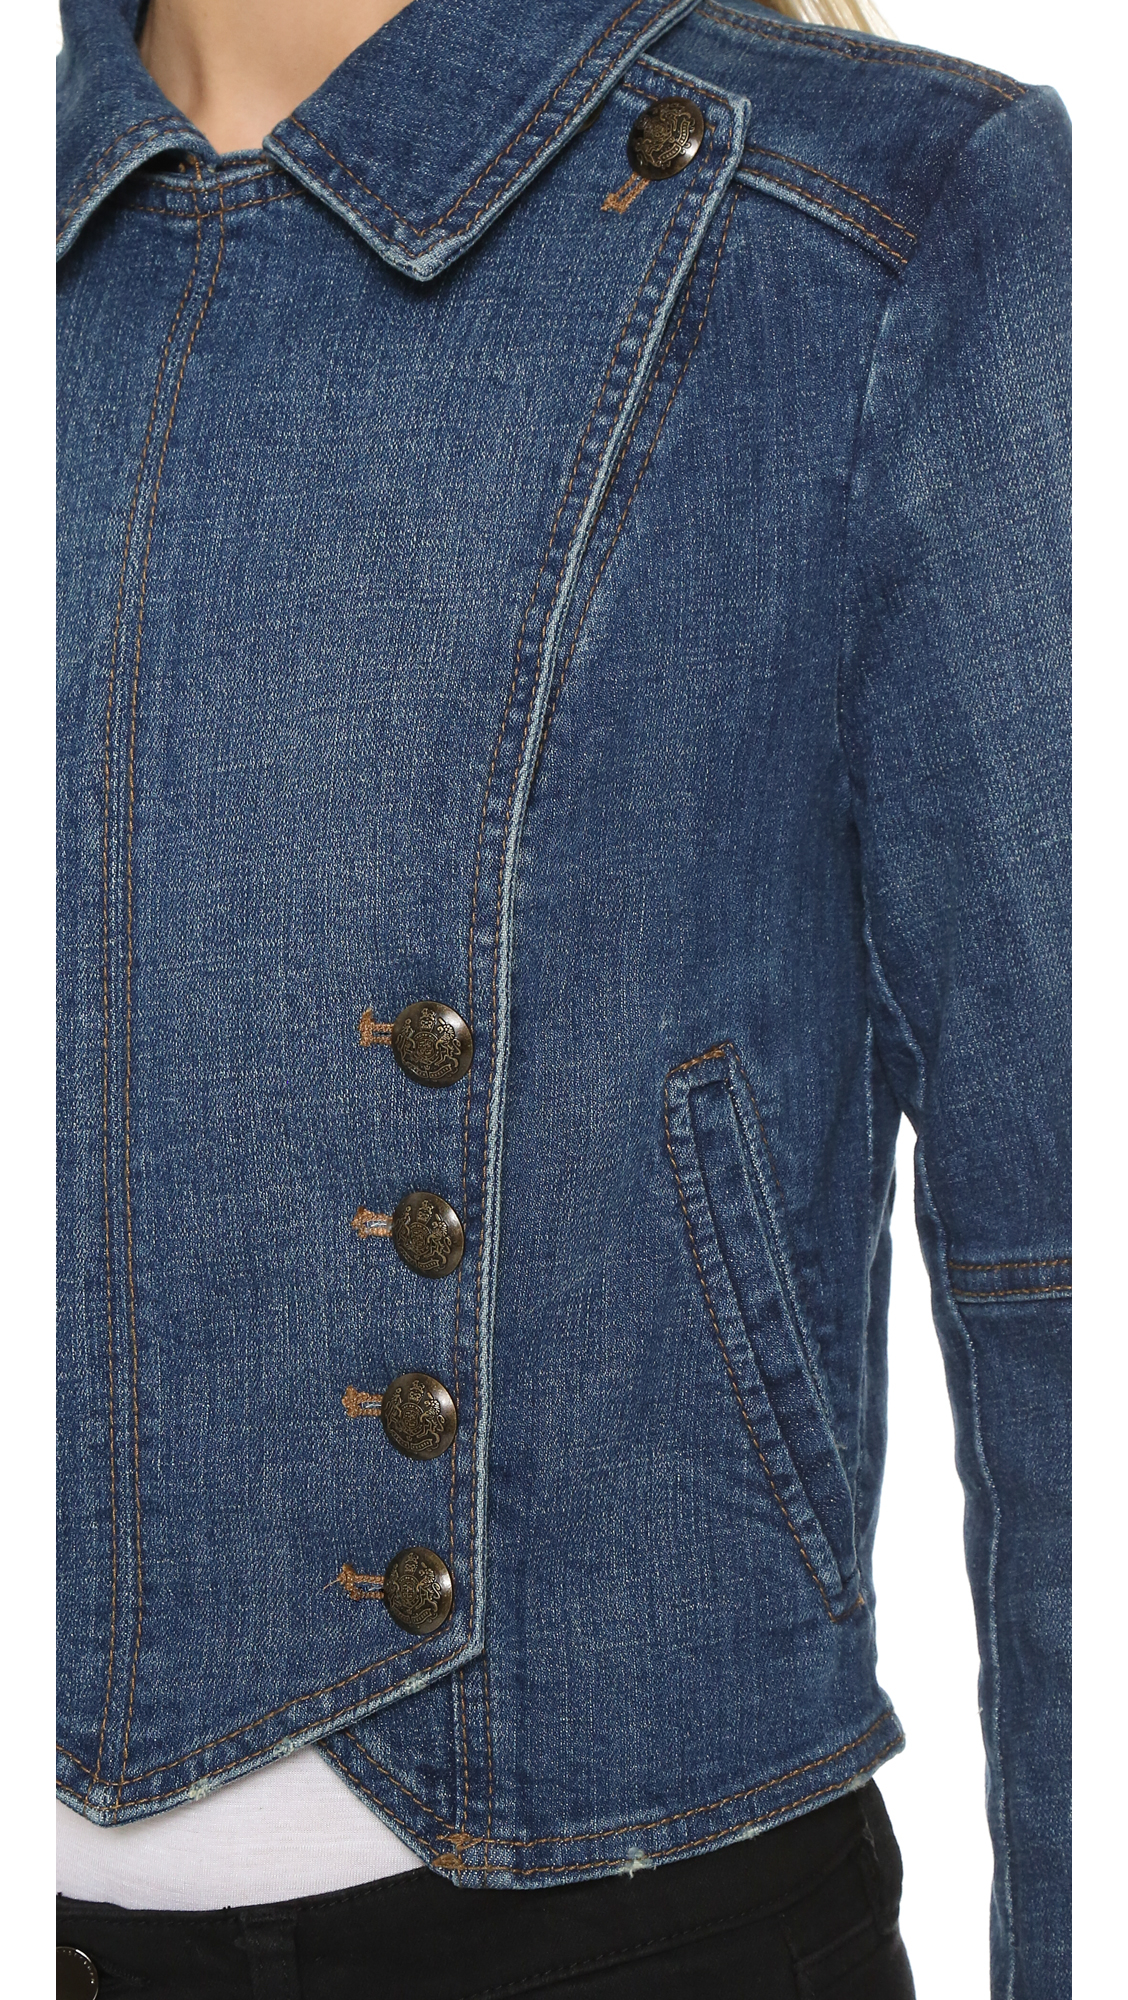 The Gap jackets in denim can live up to all these challenges. Denim Jacket Features Durable, stylish and practical, these jackets are made from the best blends of fabrics and come in all your favorite colors.